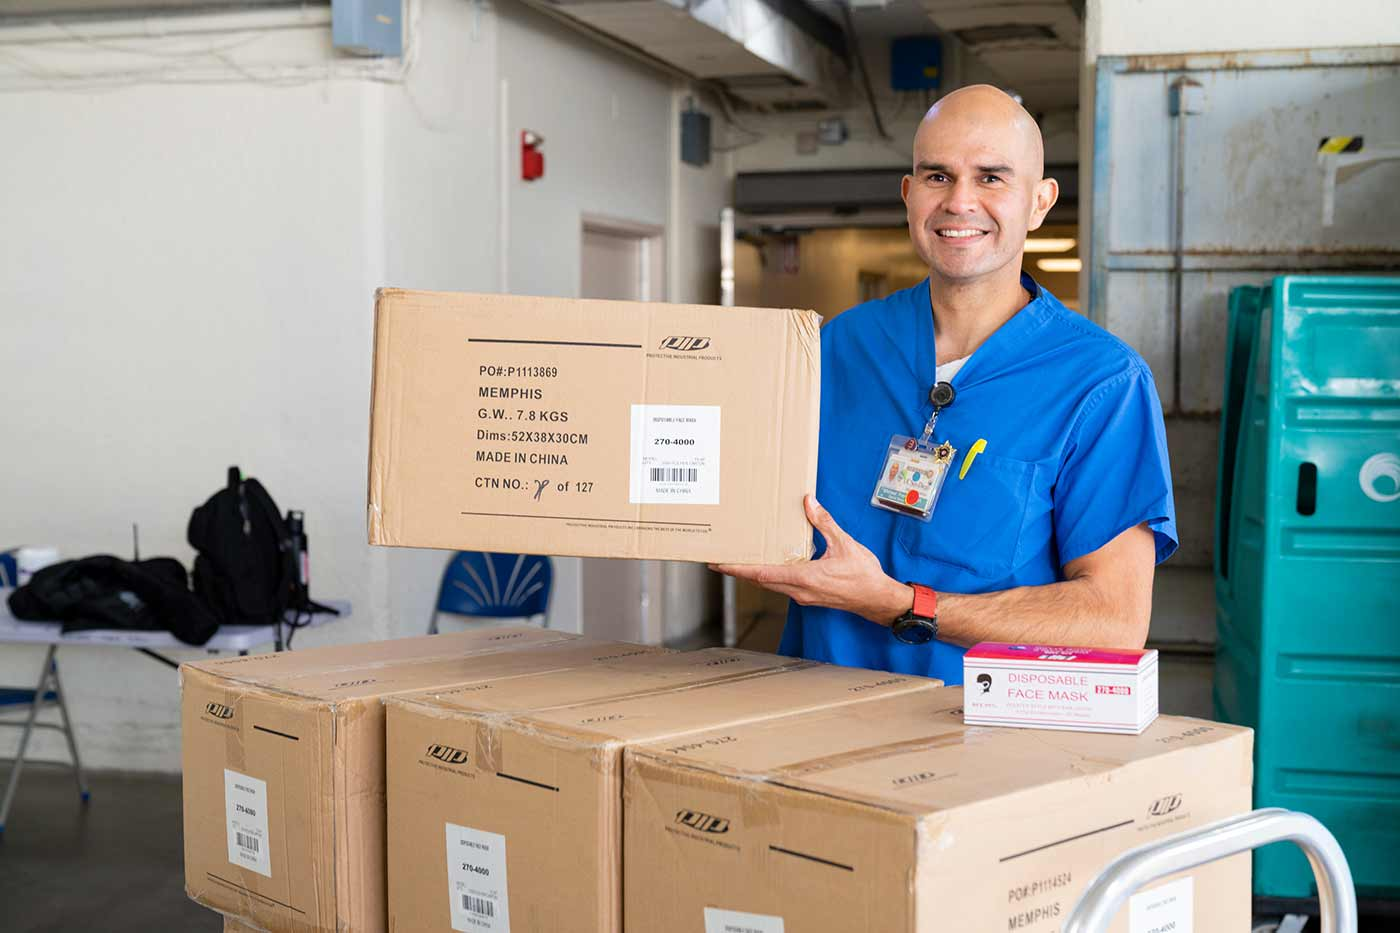 Employee with donation boxes